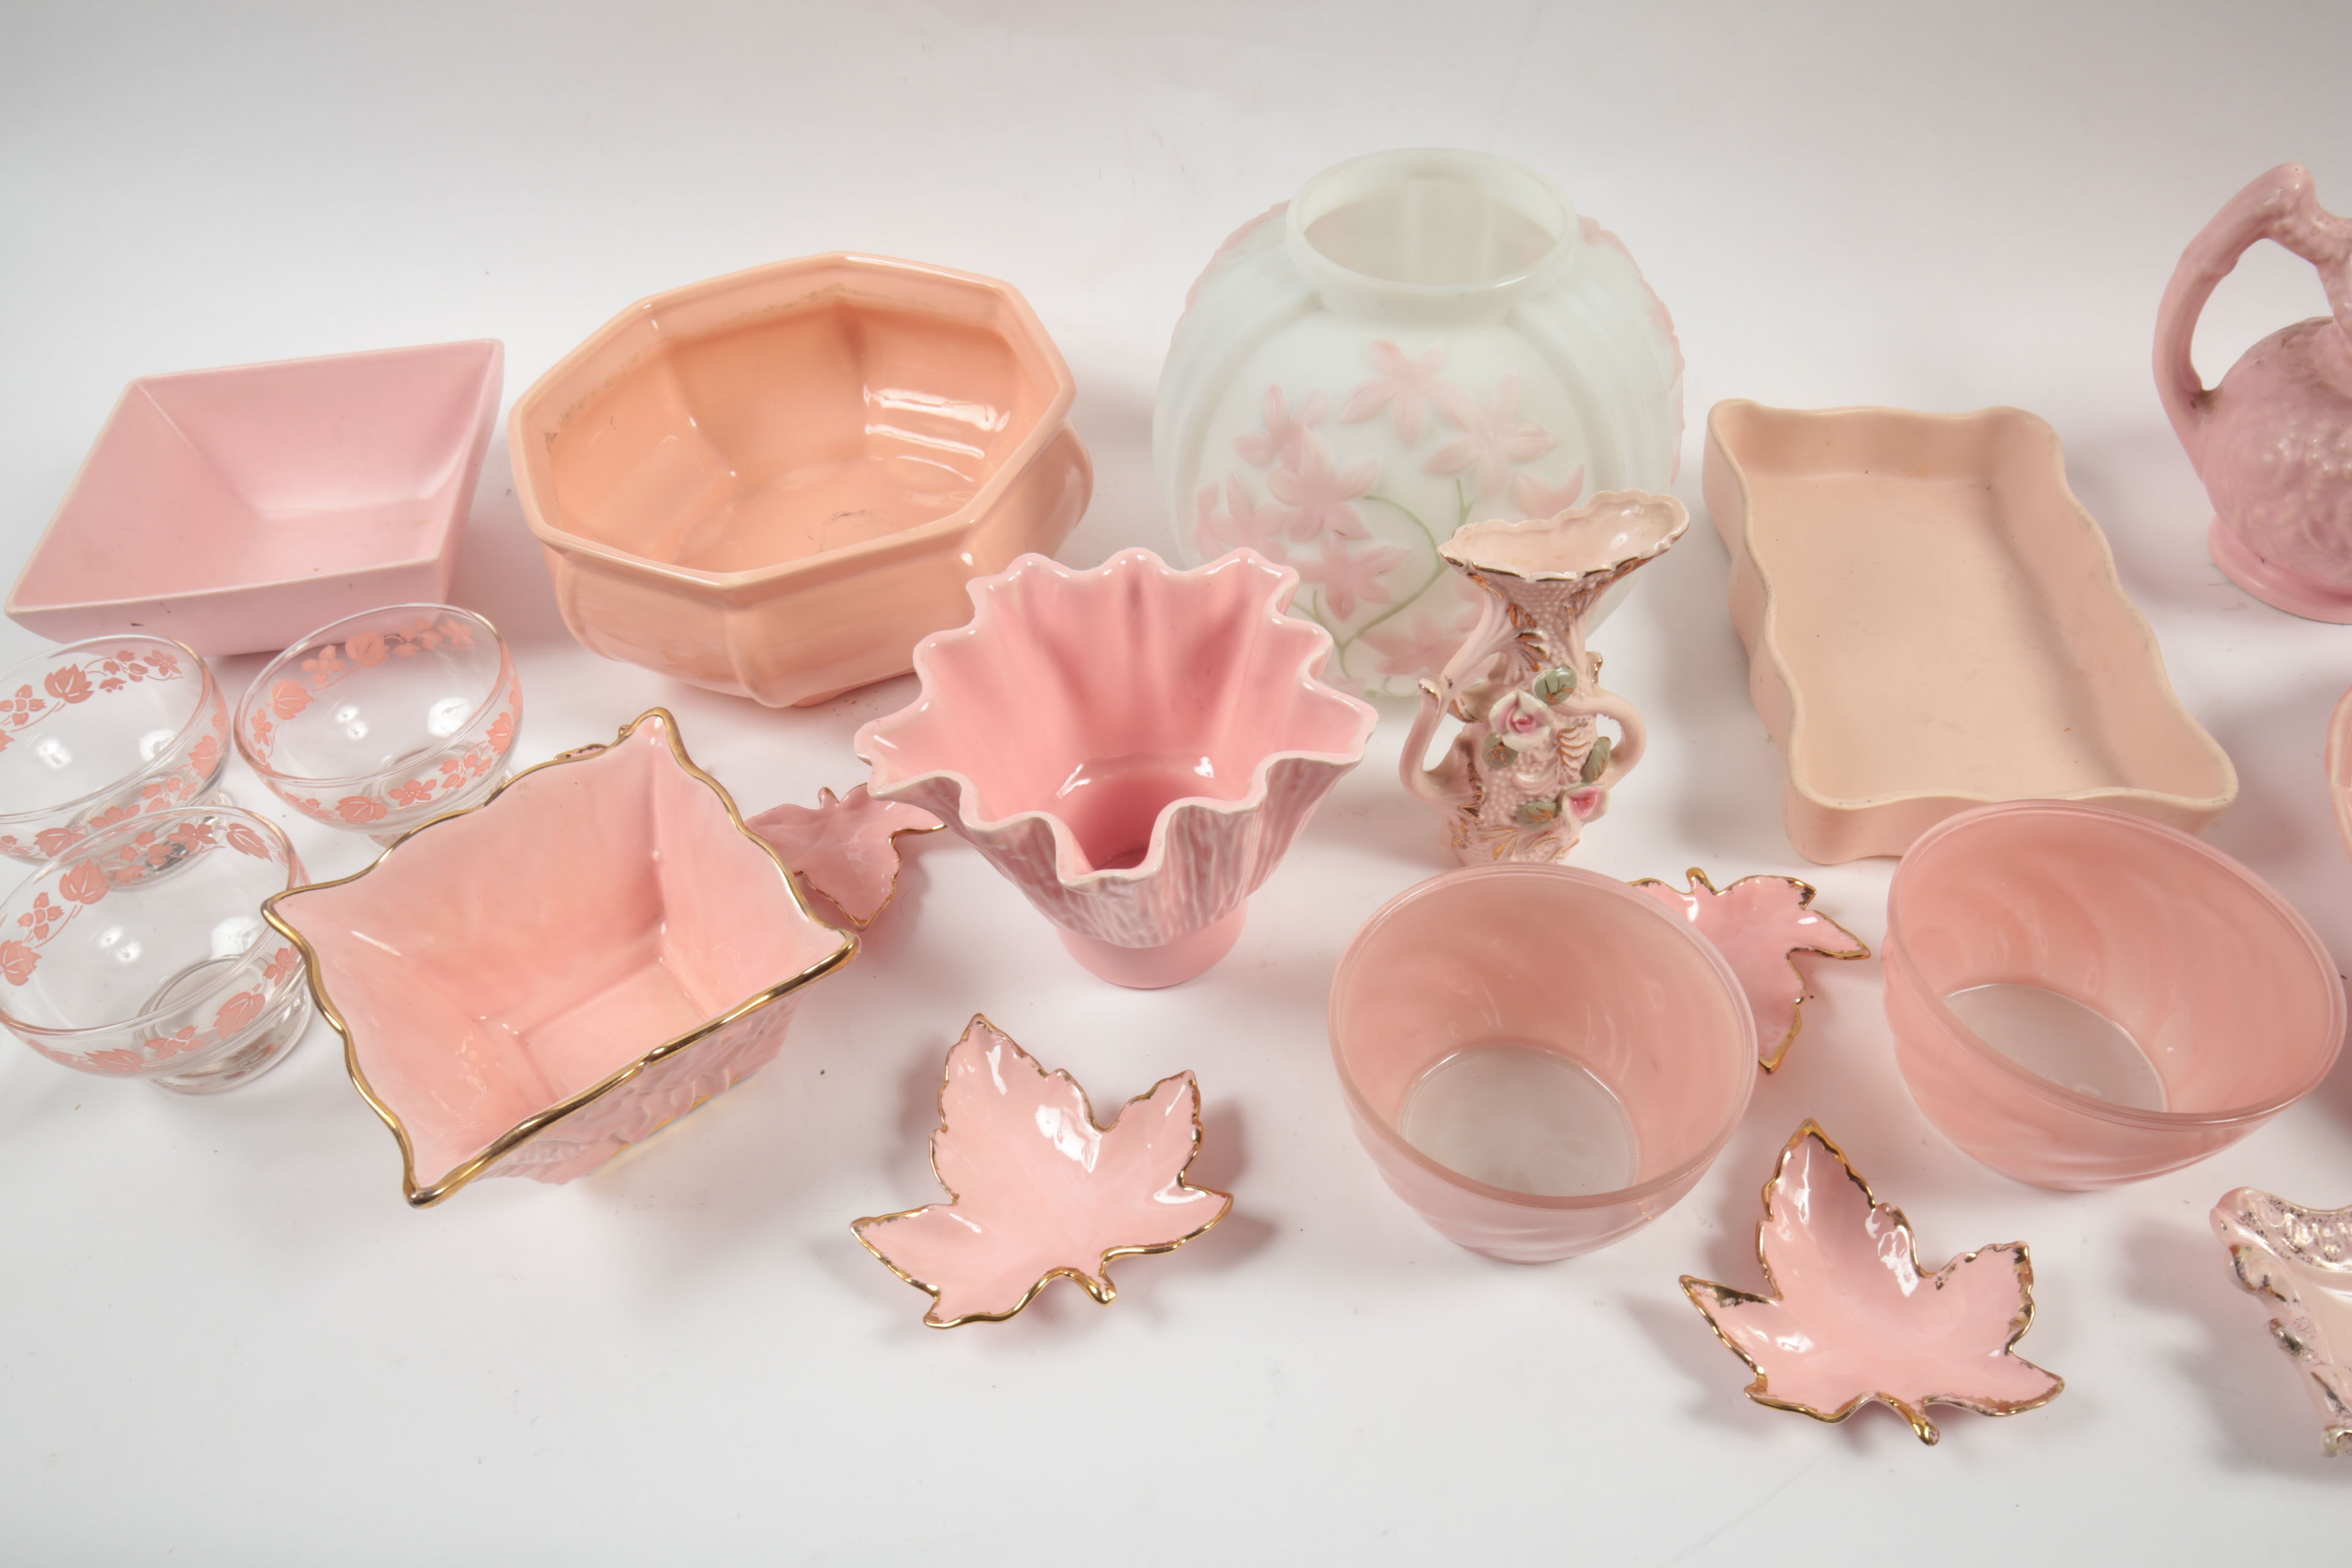 Large Assortment of Vintage Pink Ceramic and Glass Decor